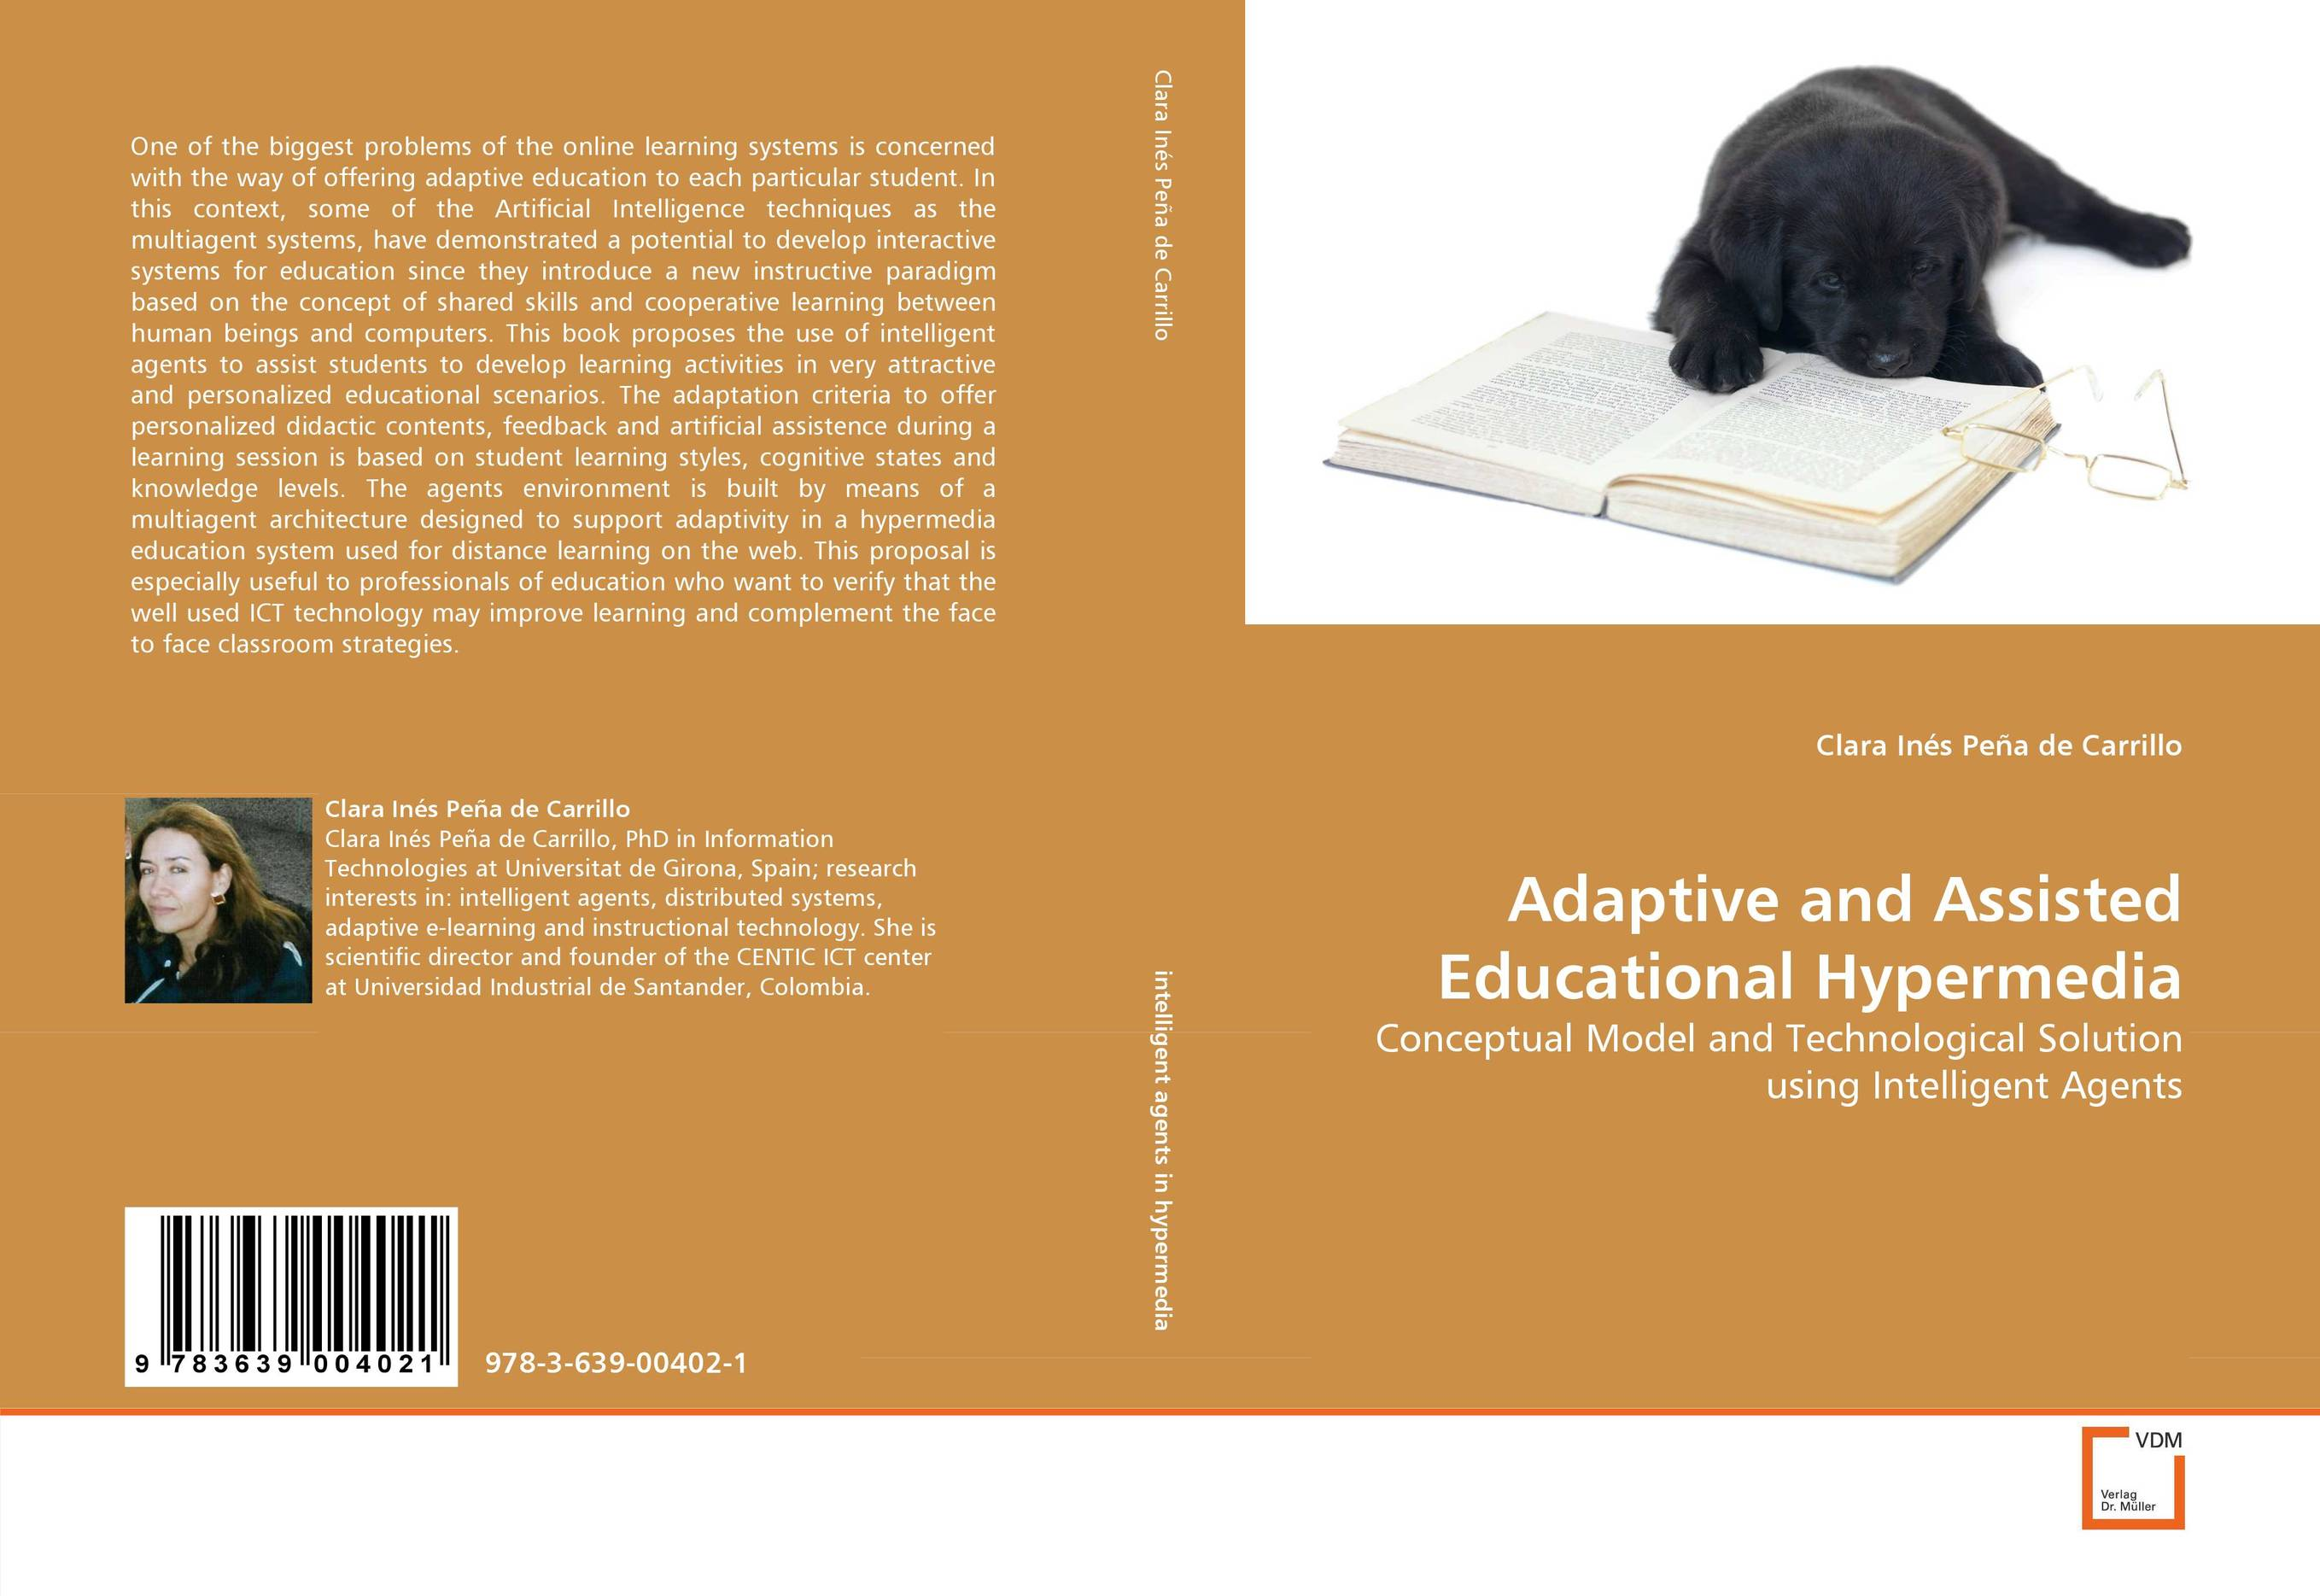 Adaptive and Assisted Educational Hypermedia peter stone layered learning in multiagent systems – a winning approach to robotic soccer